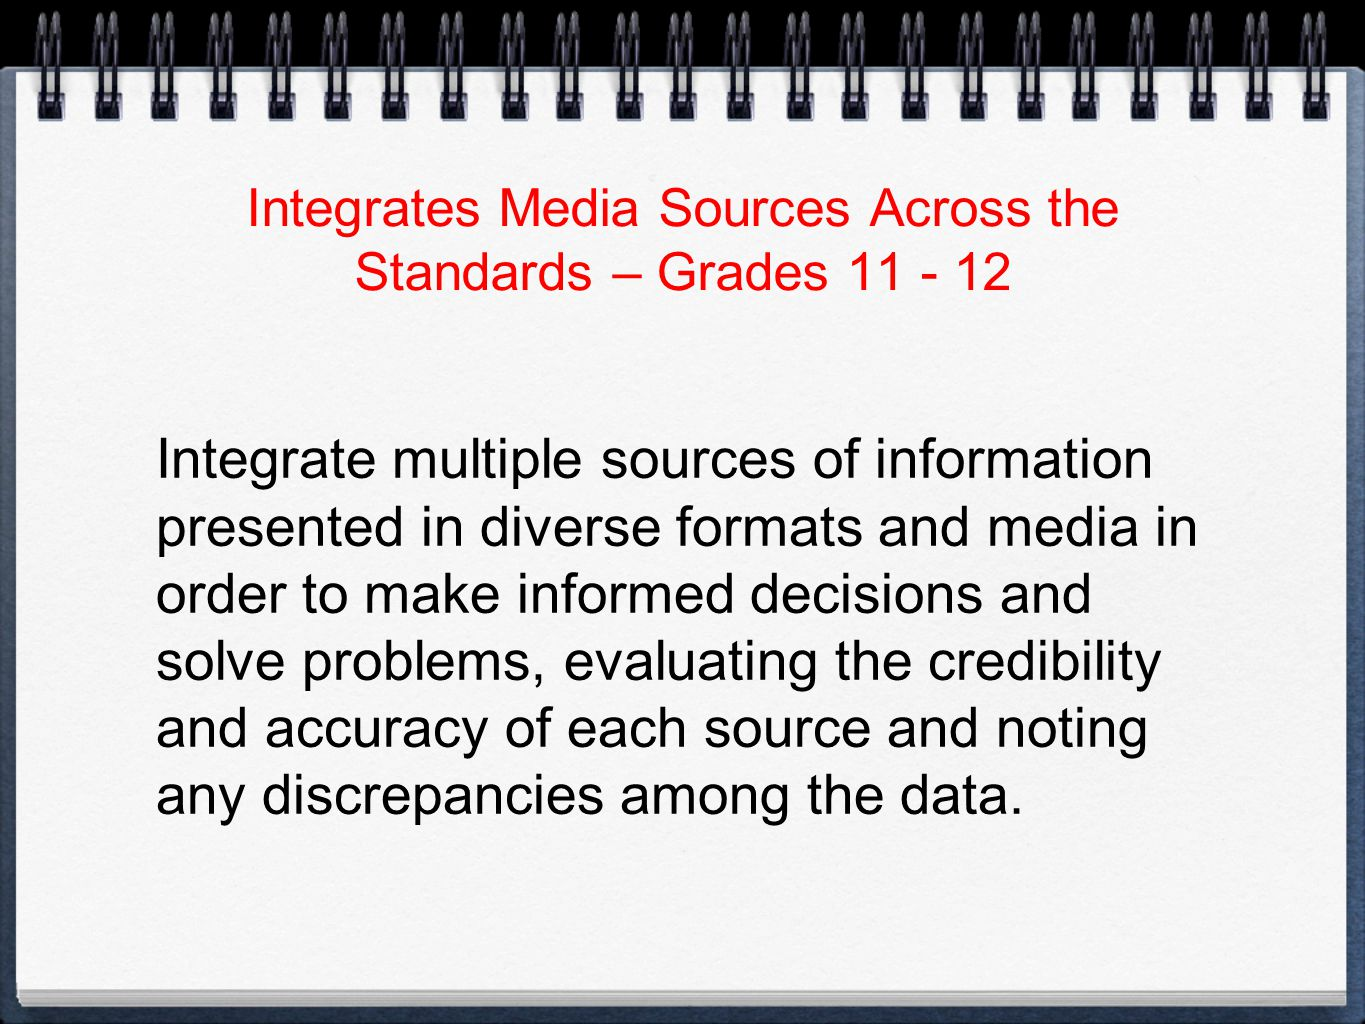 Integrates Media Sources Across the Standards – Grades Integrate multiple sources of information presented in diverse formats and media in order to make informed decisions and solve problems, evaluating the credibility and accuracy of each source and noting any discrepancies among the data.